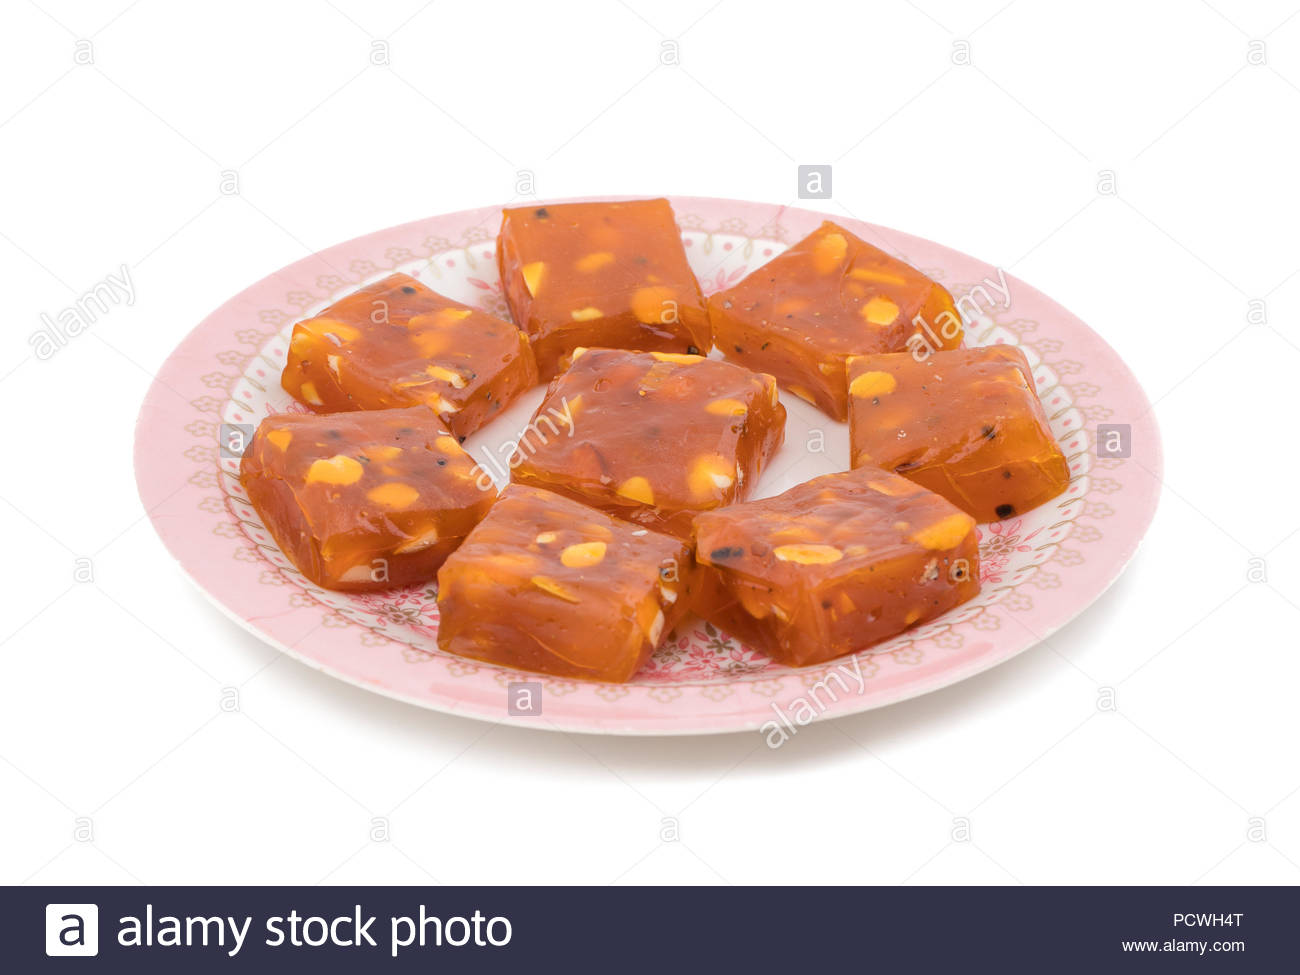 Bombay Karachi Halwa or Turkish Dessert, made from fine flour and Dry Fruits - Stock Image